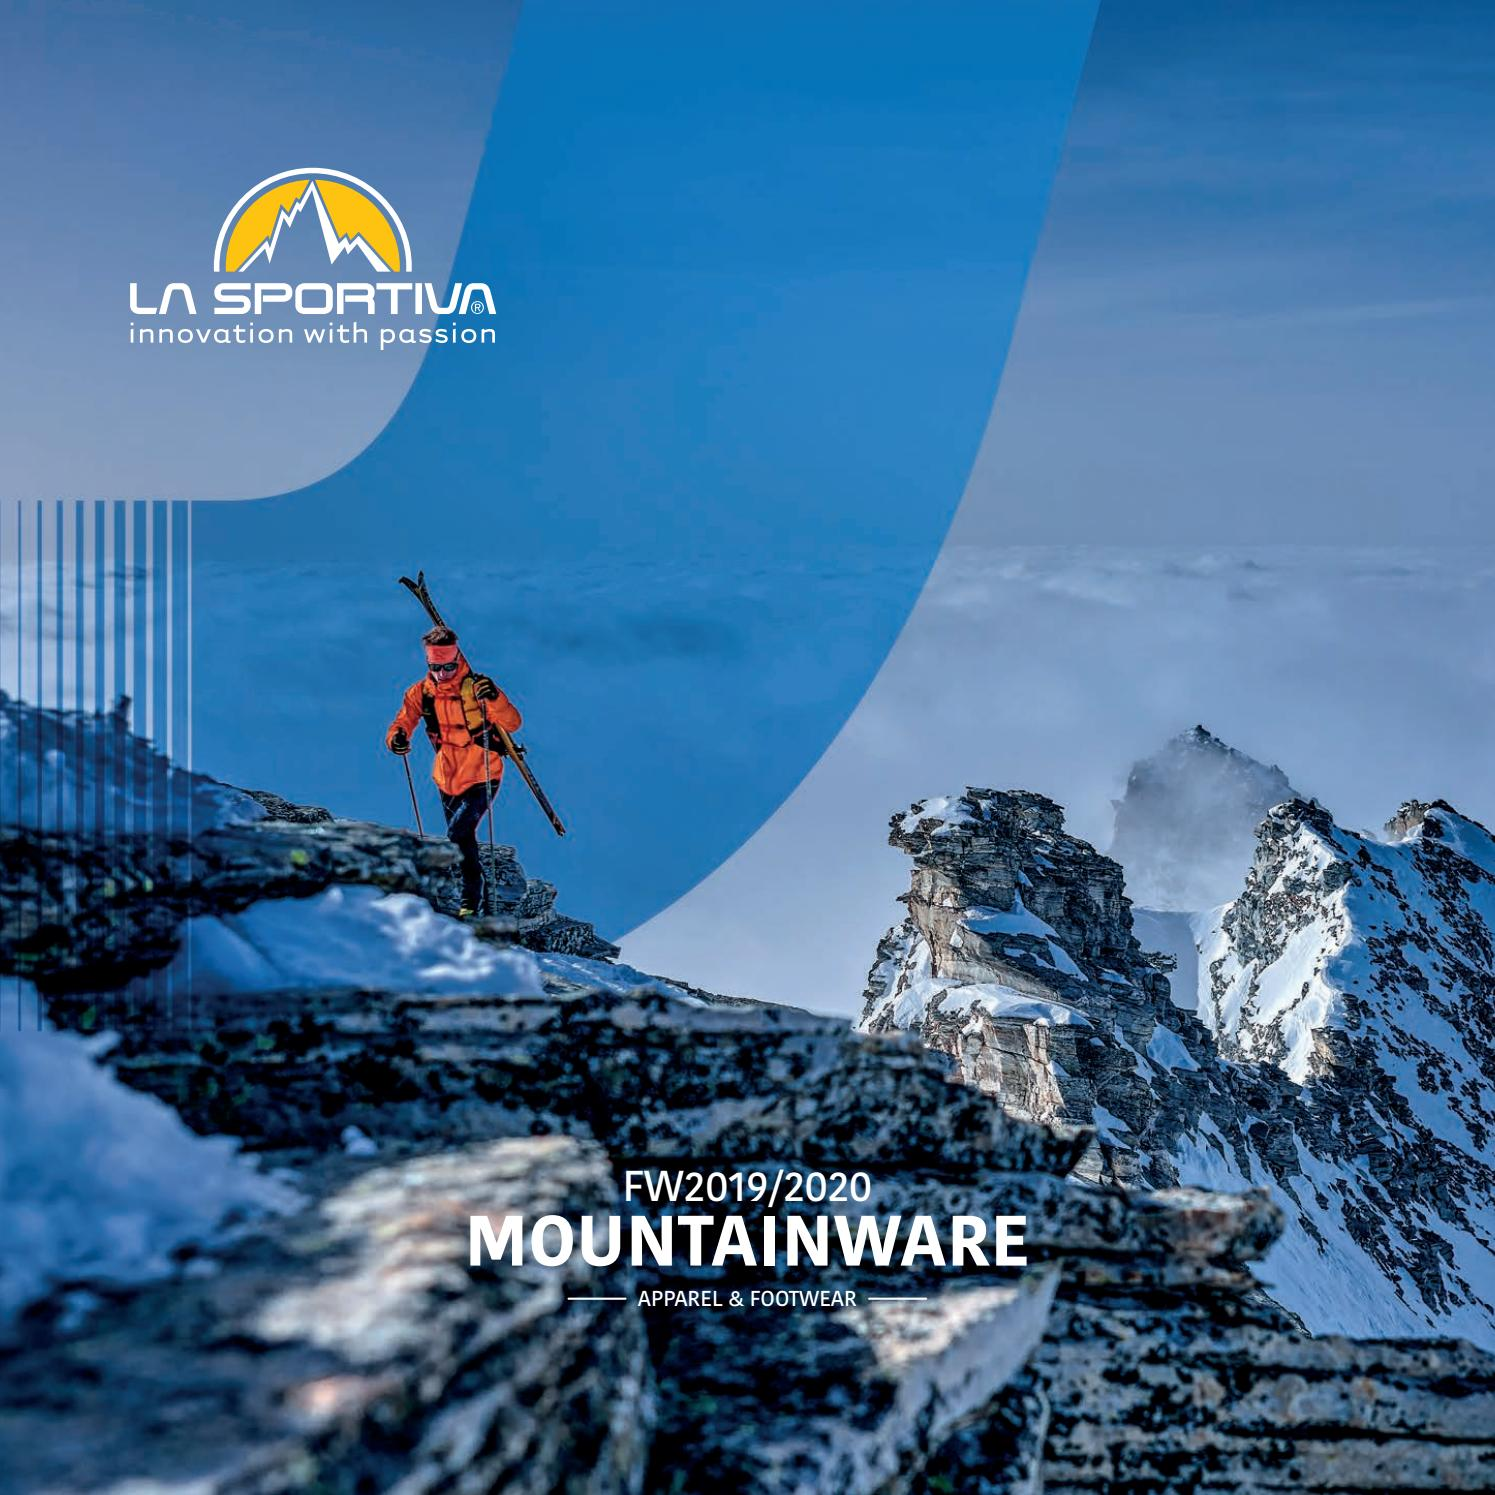 Catalogue Fw Issuu La Mountainblogit Sportiva 20 By 2019 yv8wON0mn